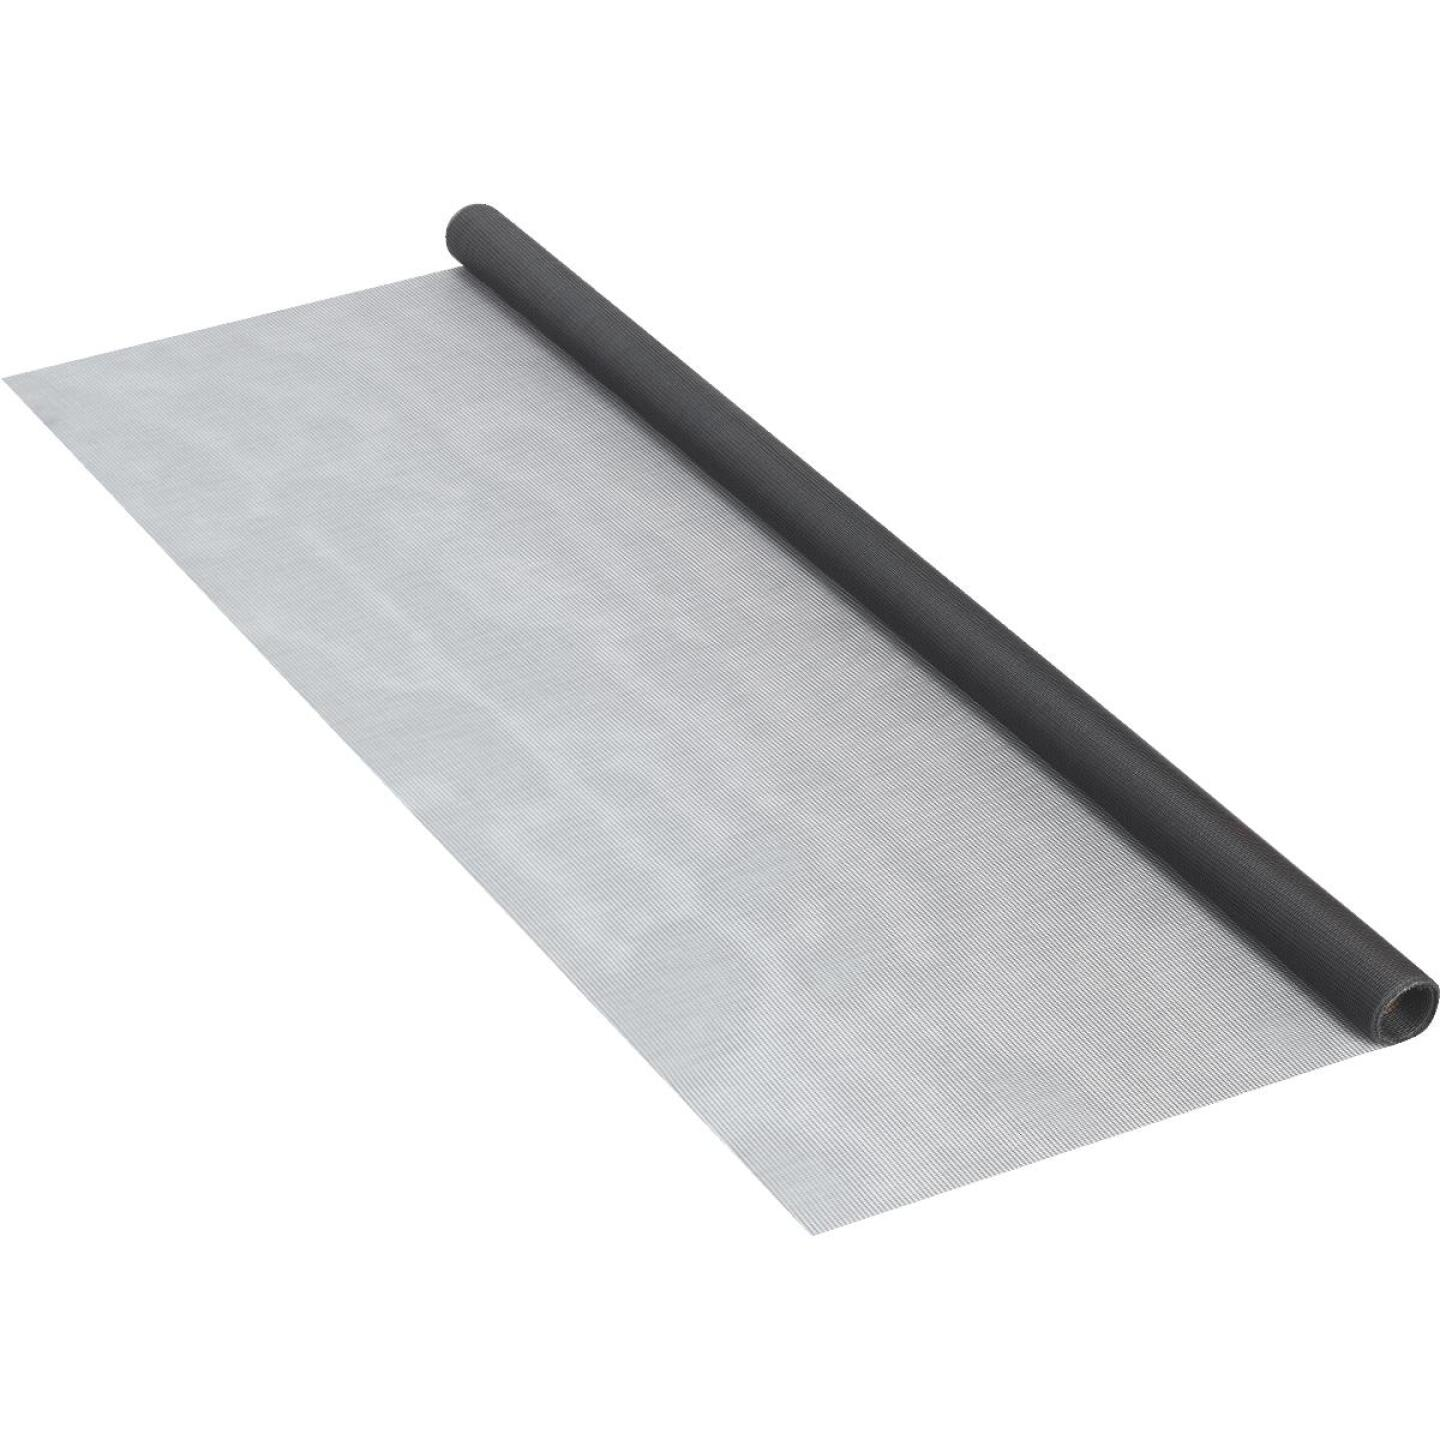 Phifer 24 In. x 84 In. Charcoal Fiberglass Screen Cloth Ready Rolls Image 3